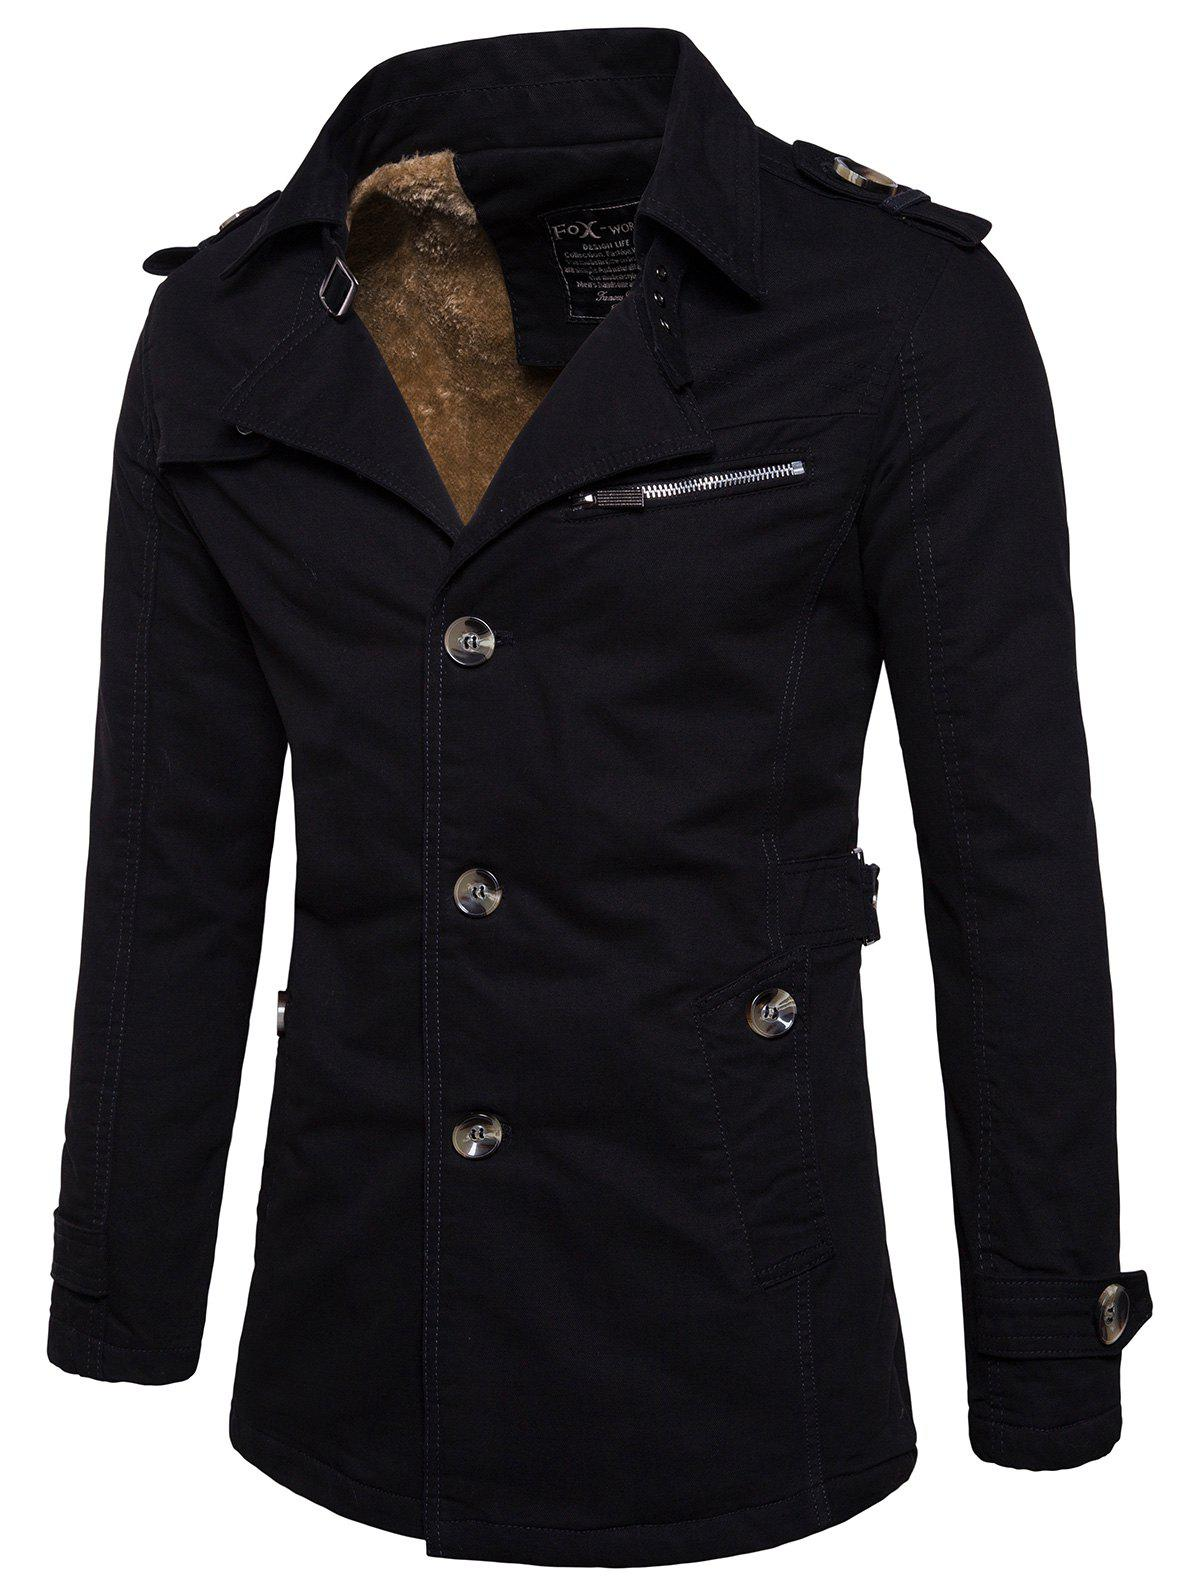 Hot Fur-lined Epaulet Single-breasted Jacket